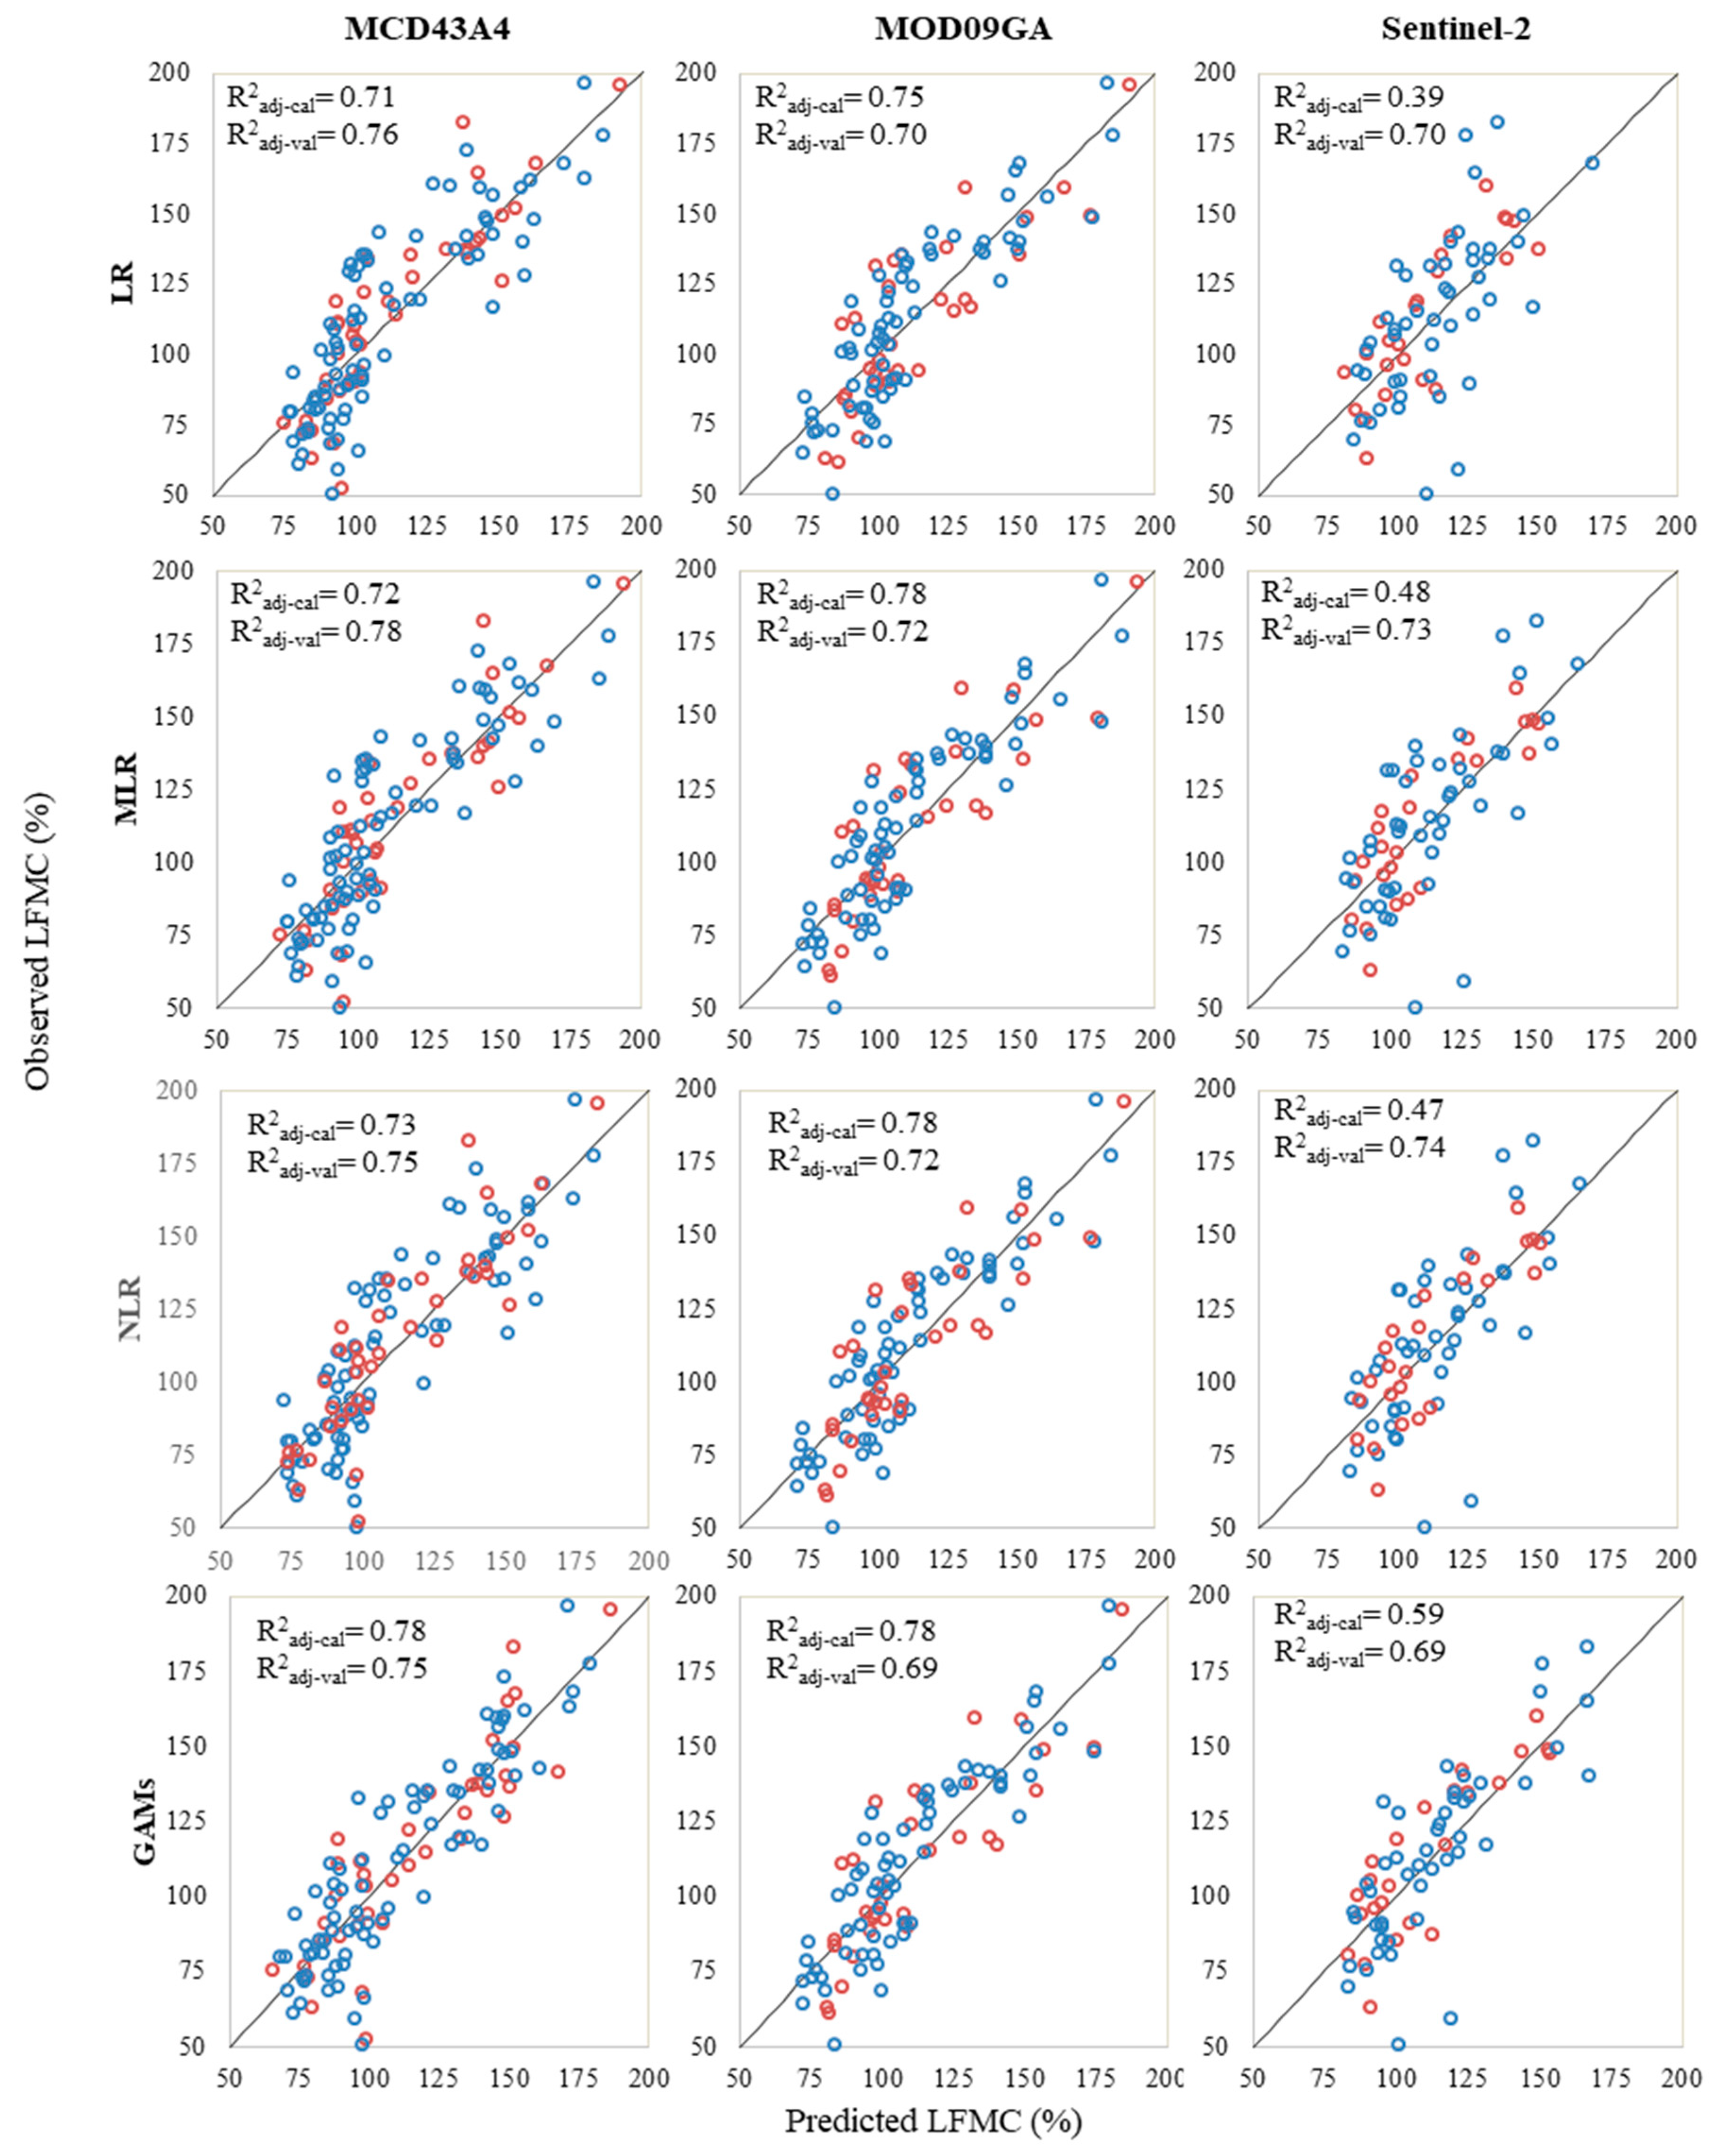 Twelve scatterplots, configured three by four, comparing the observed Live Fuel Moisture Content versus the predicted Live Fuel Moisture Content using MCD43A4, MOD09GA, and Sentinel-2 data. Within each plot, blue circles relate to calibration data and the